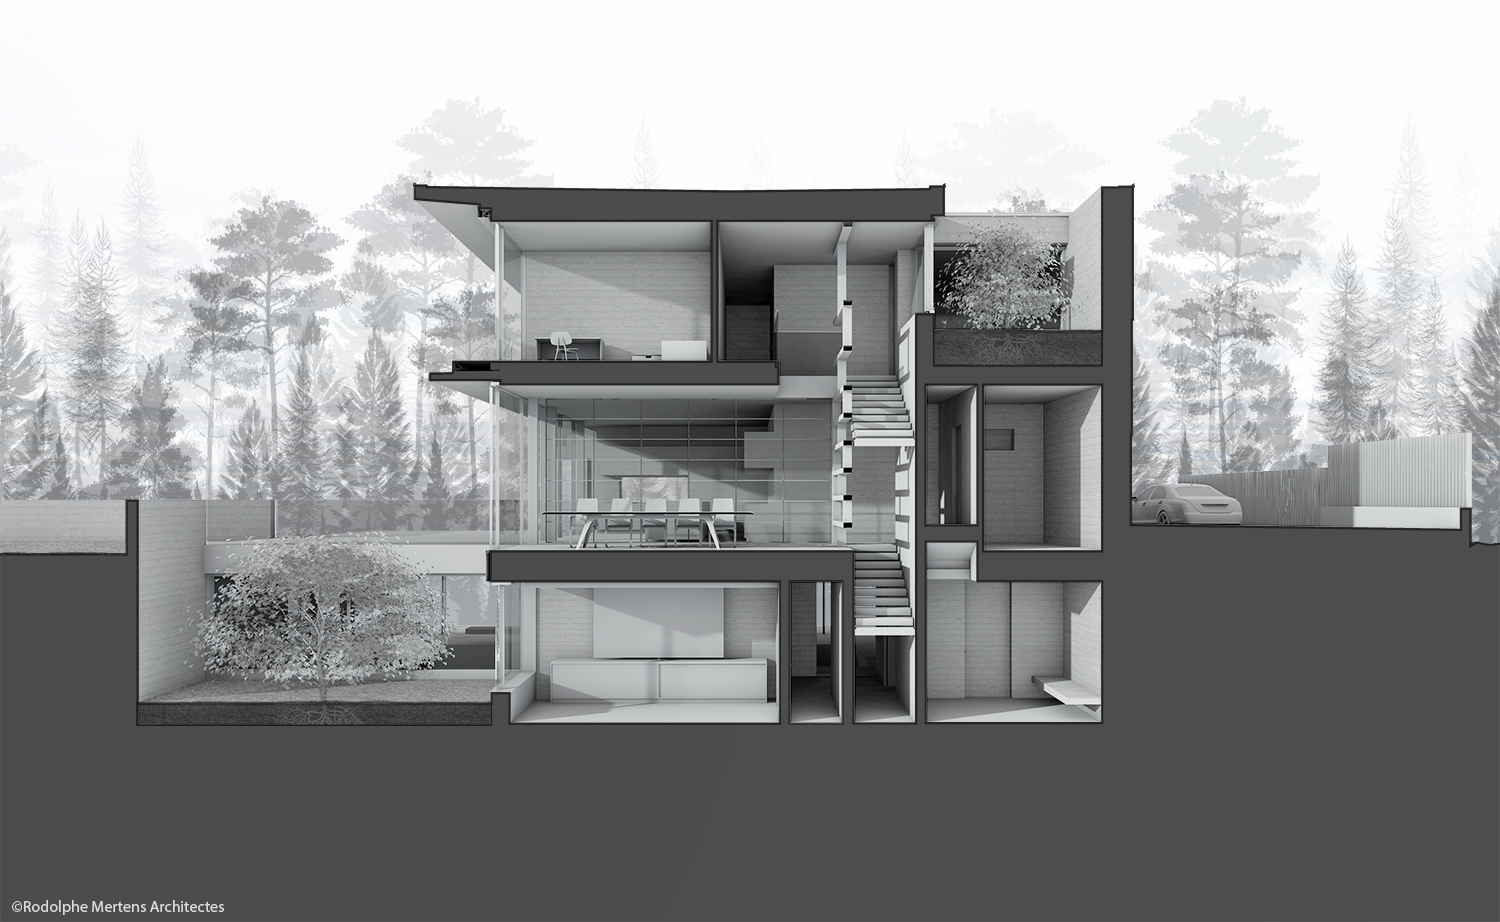 section through dining room area and patios Rodolphe Mertens Architects}